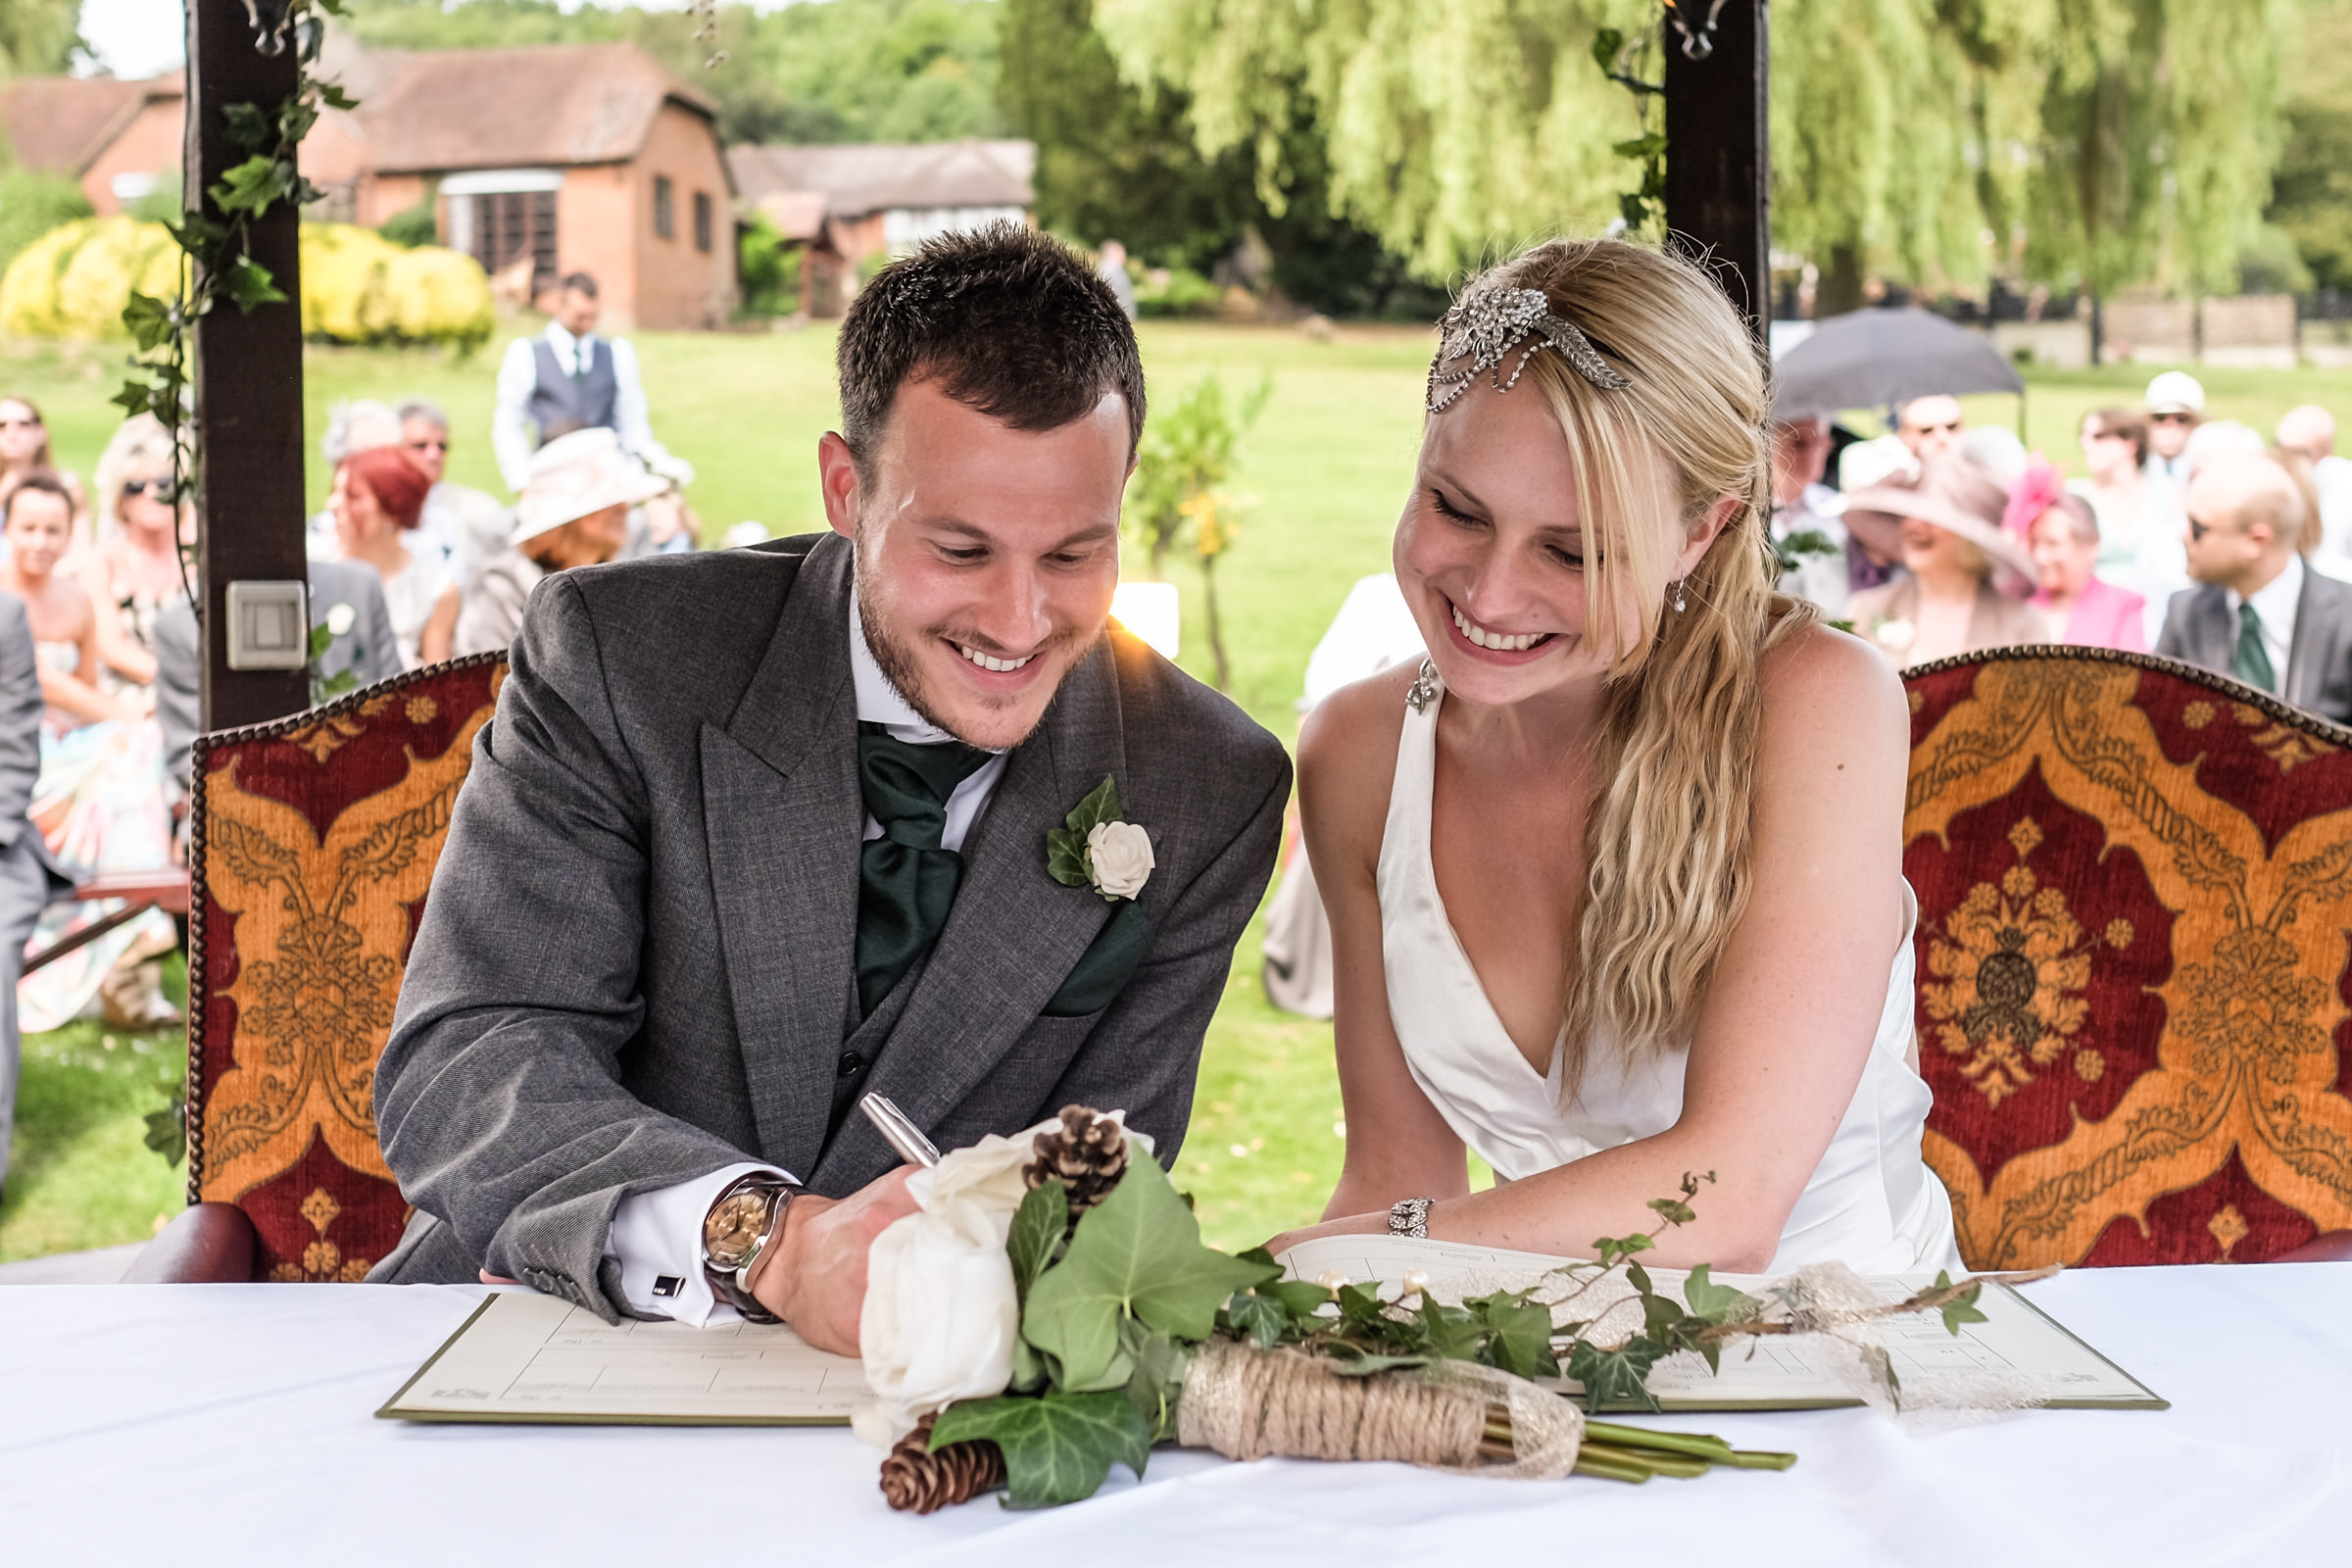 Wedding+at+Lytha+Hill+in+Haslemere+011.jpg